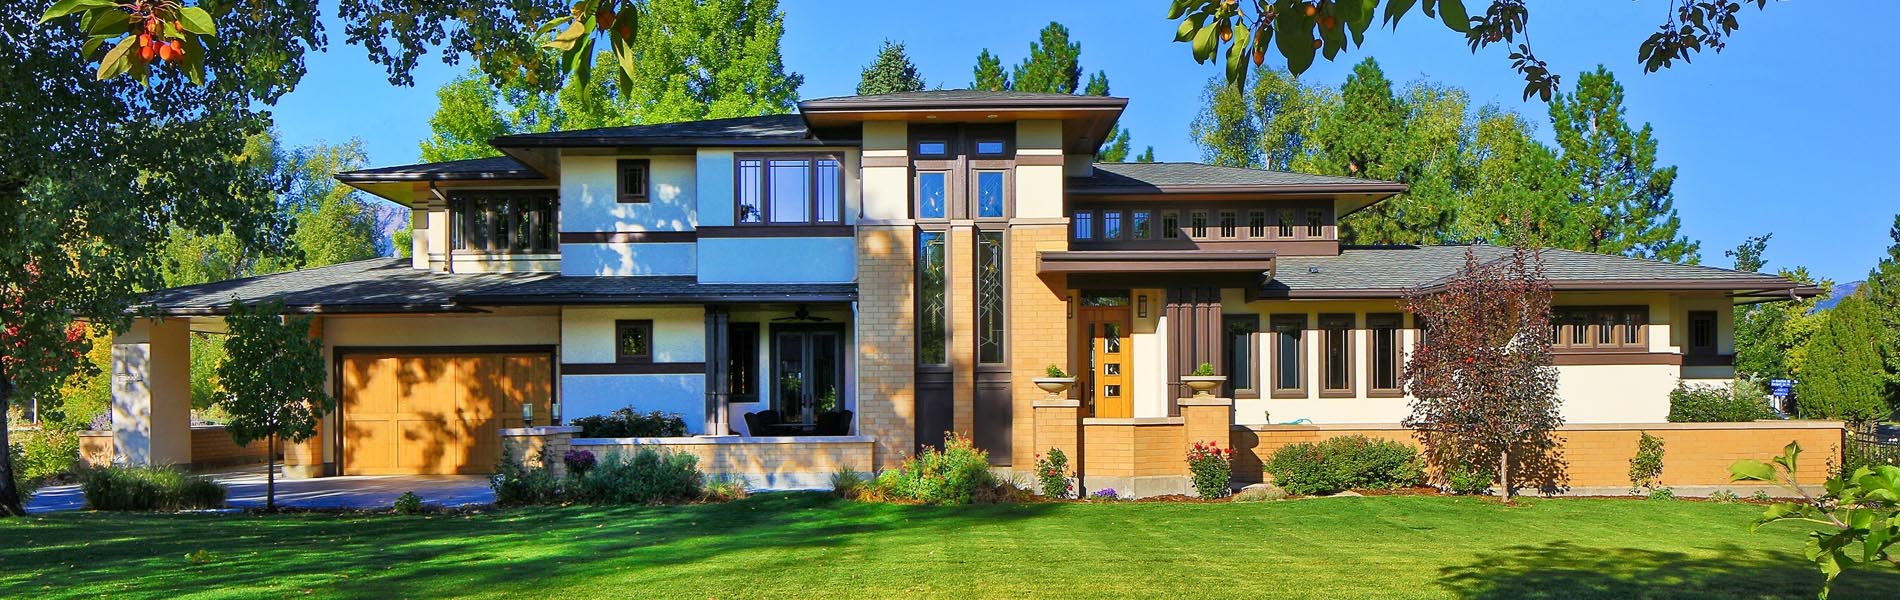 modern home design ideas. Top modern home design ideas and pics for 2019